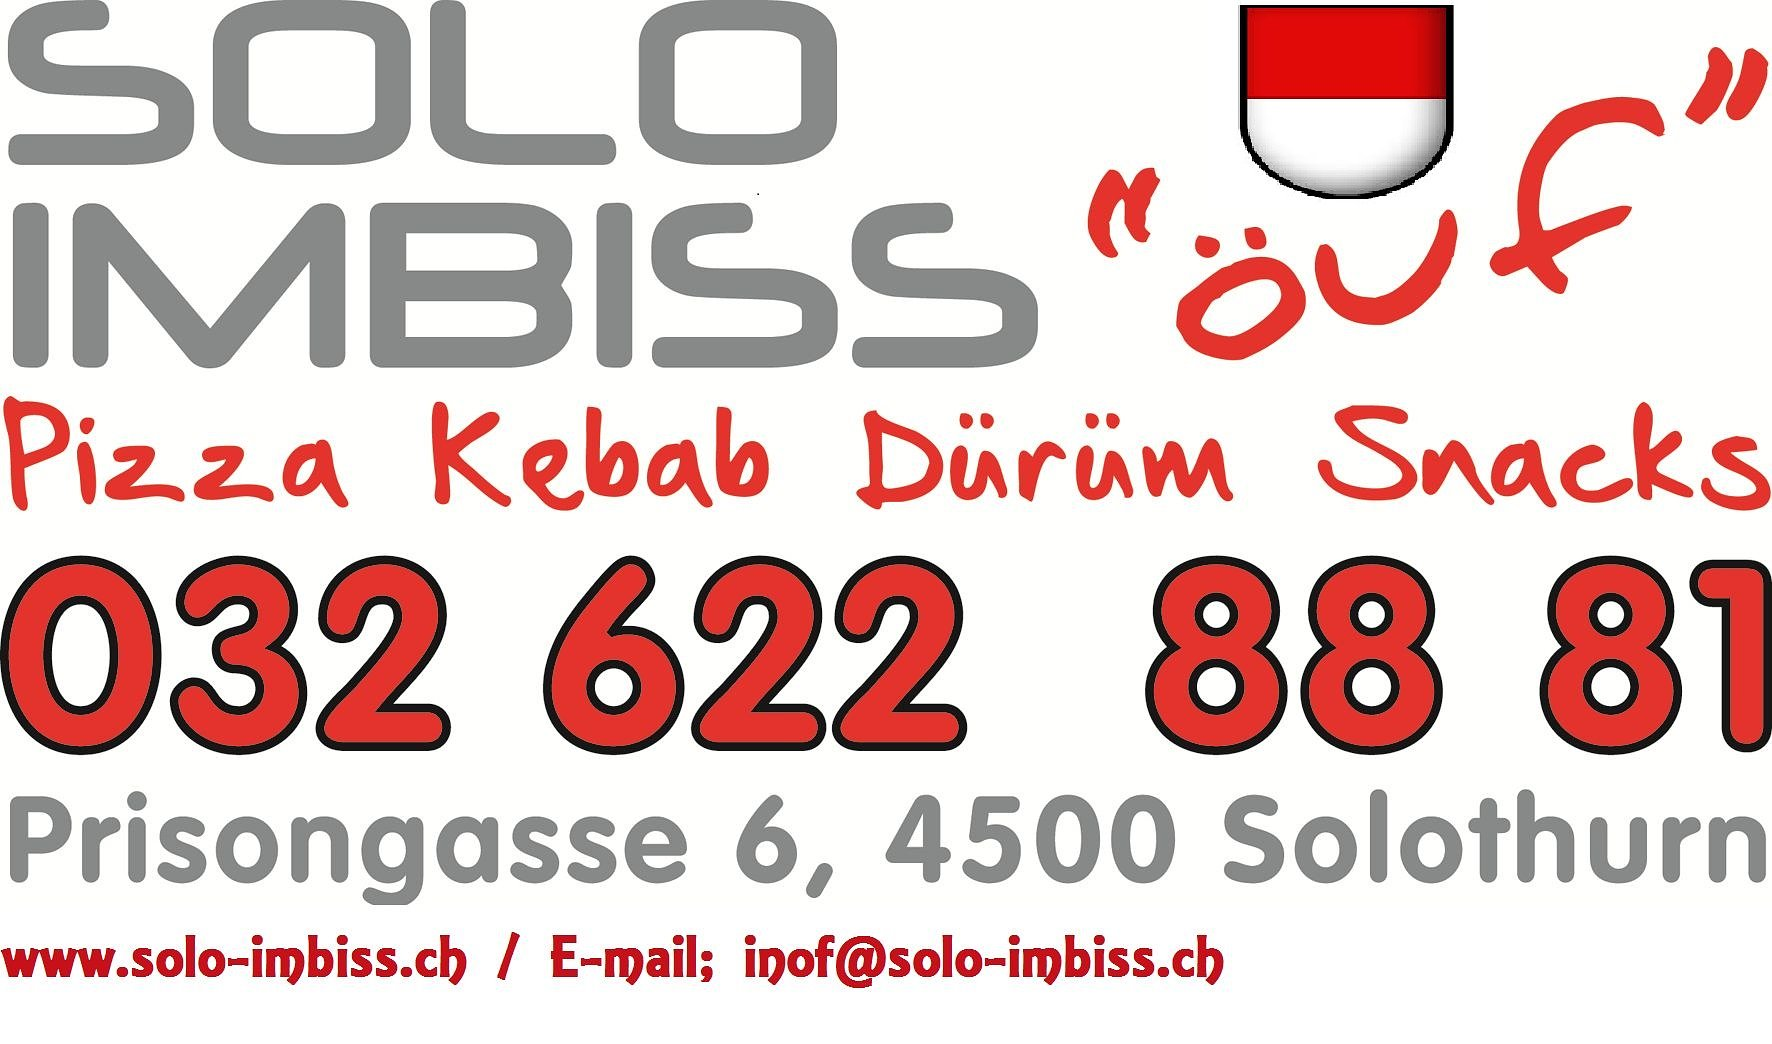 SOLO IMBISS PIZZA KURIER SOLOTHURN 032 622 88 81